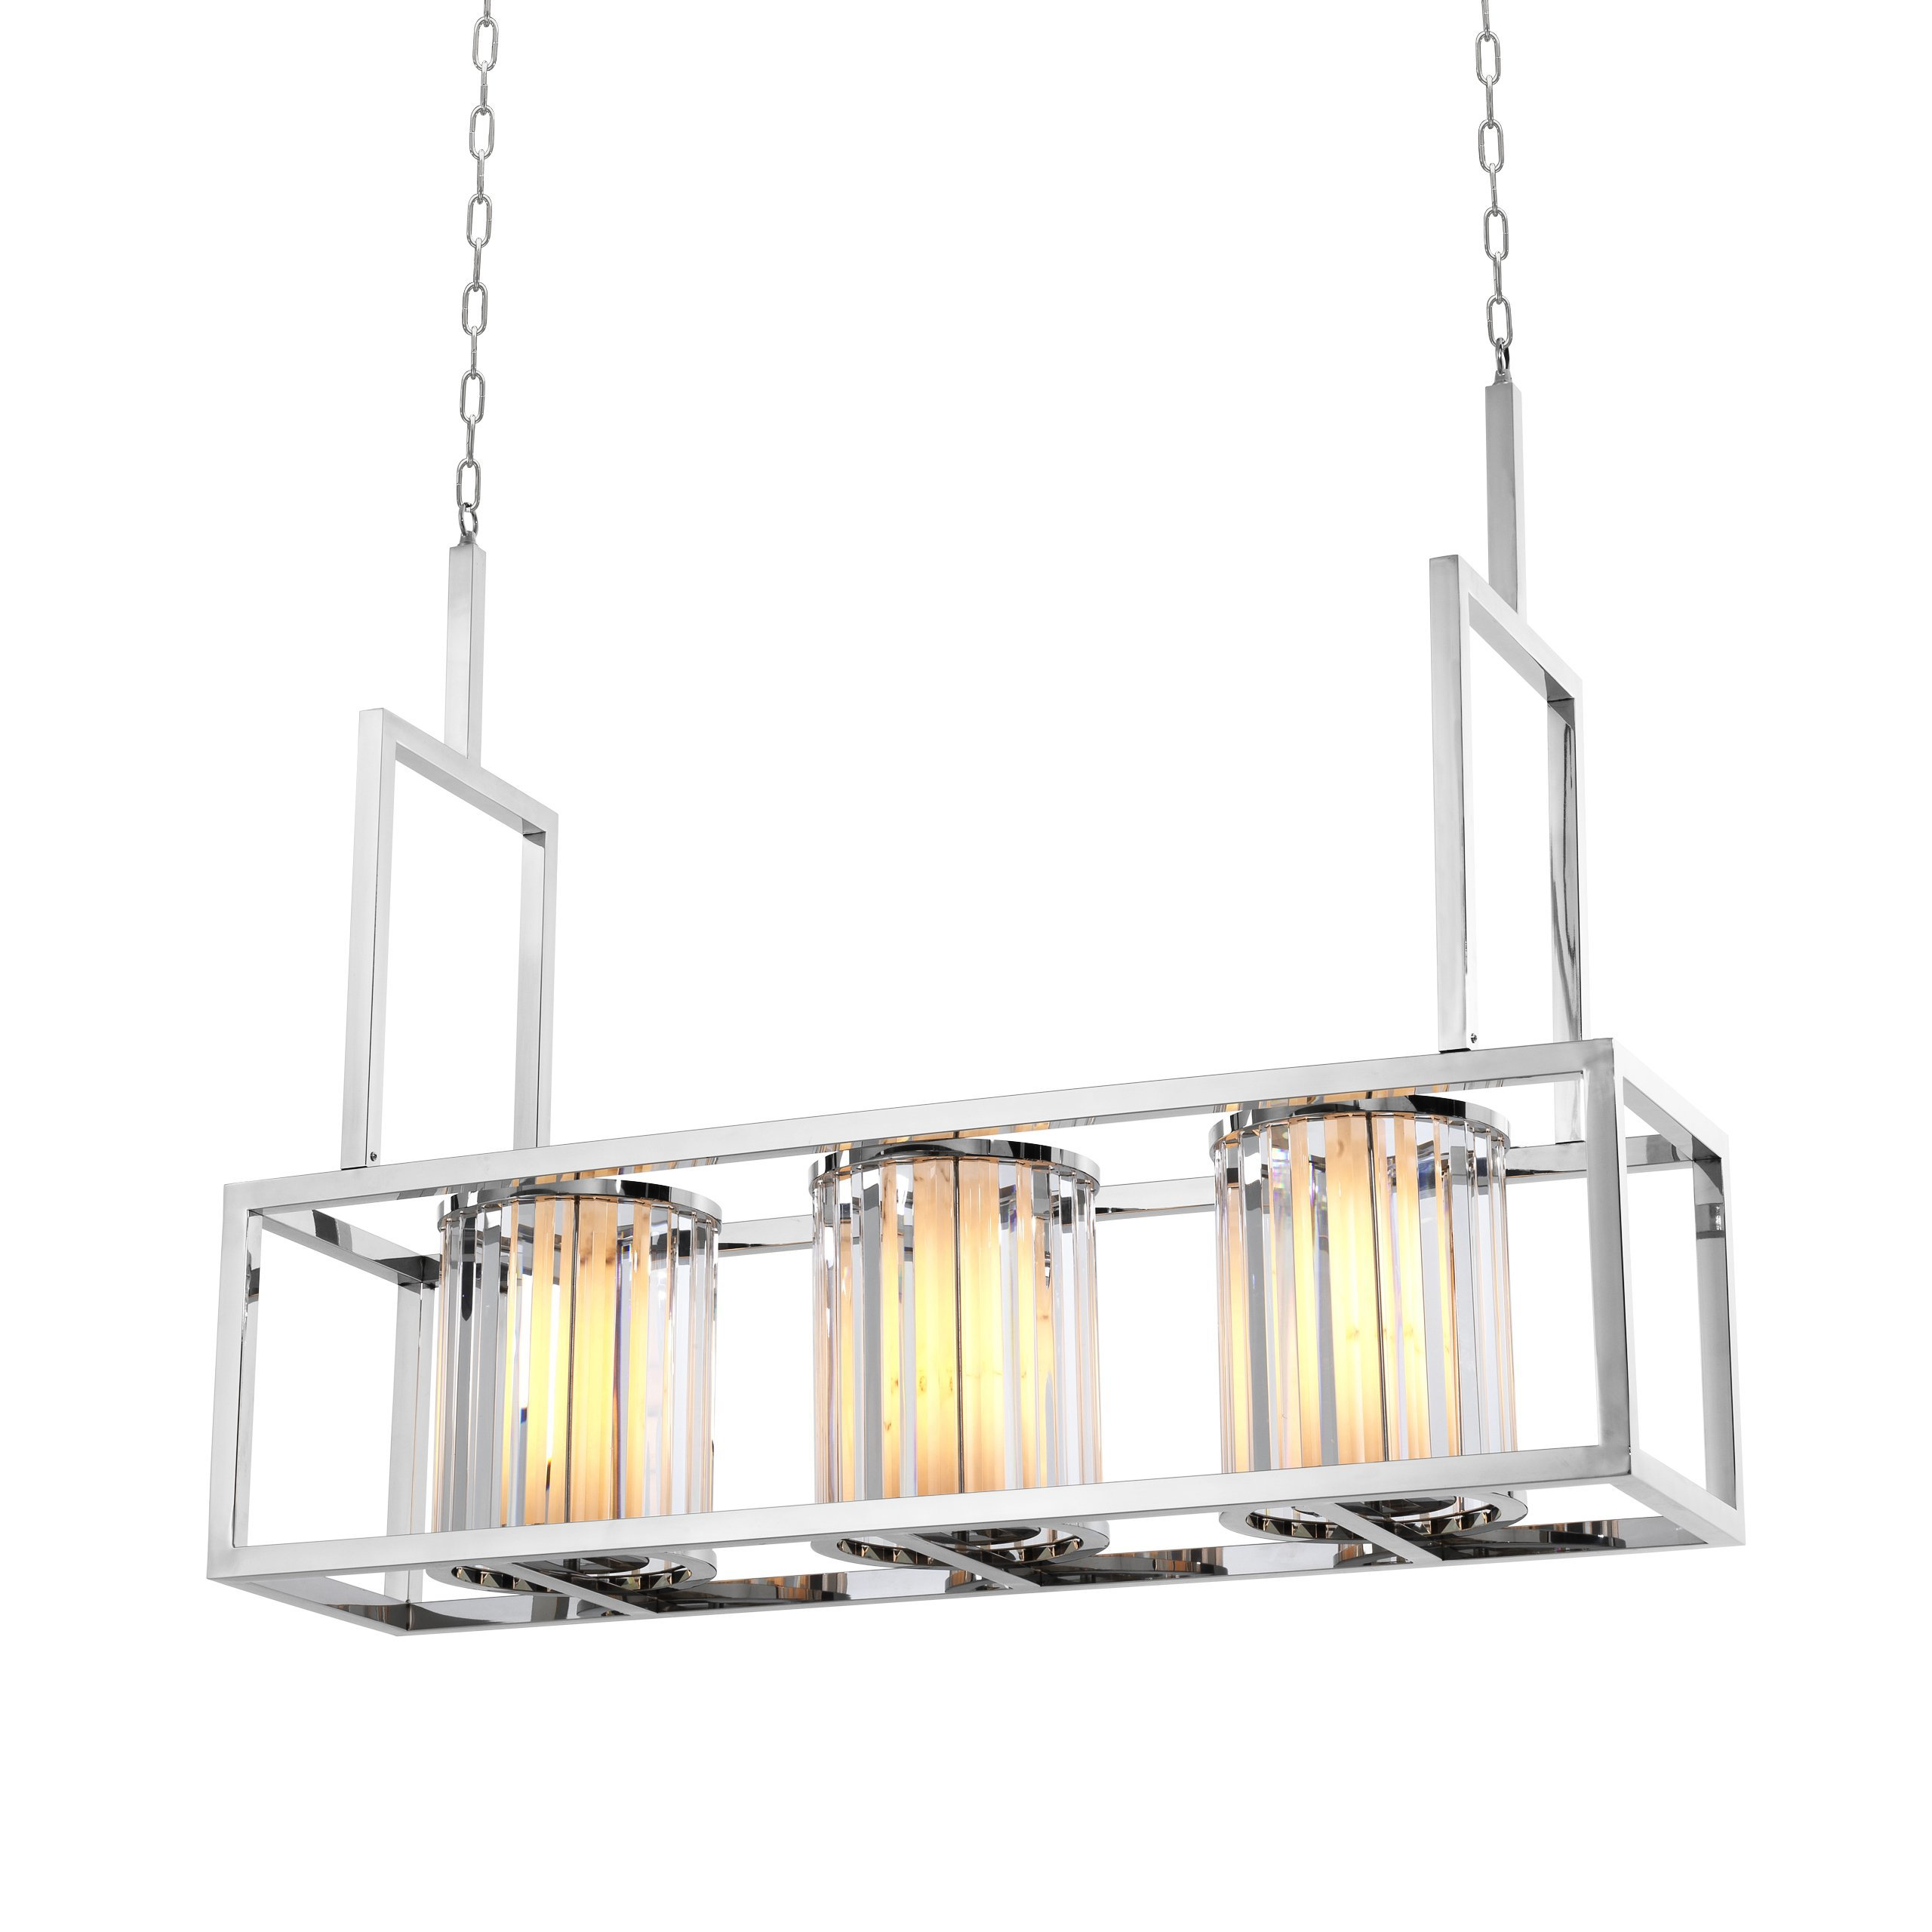 image-Eichholtz Chandelier Carducci polished stainless steel